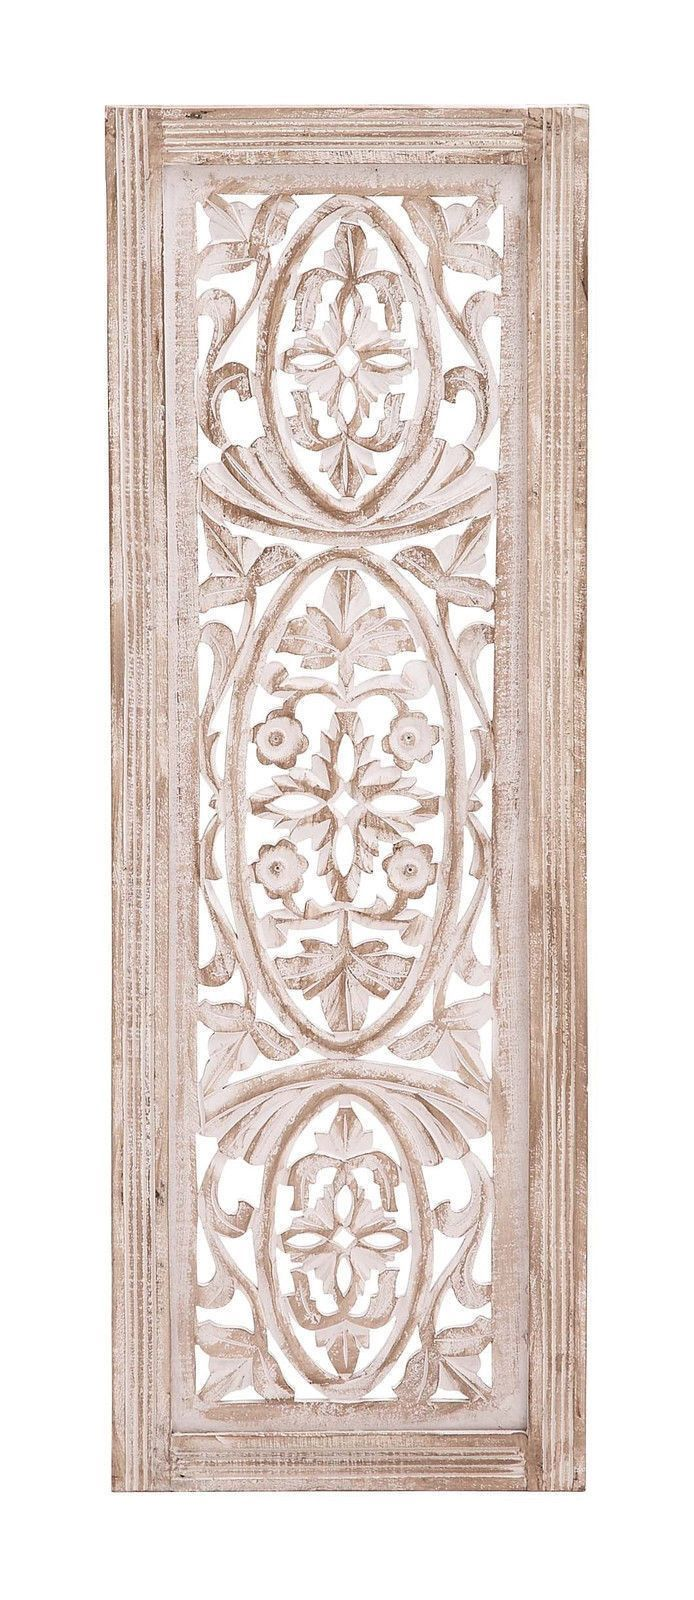 White Washed Carved Wood Wall Art Panel Shabby Country Cottage Chic